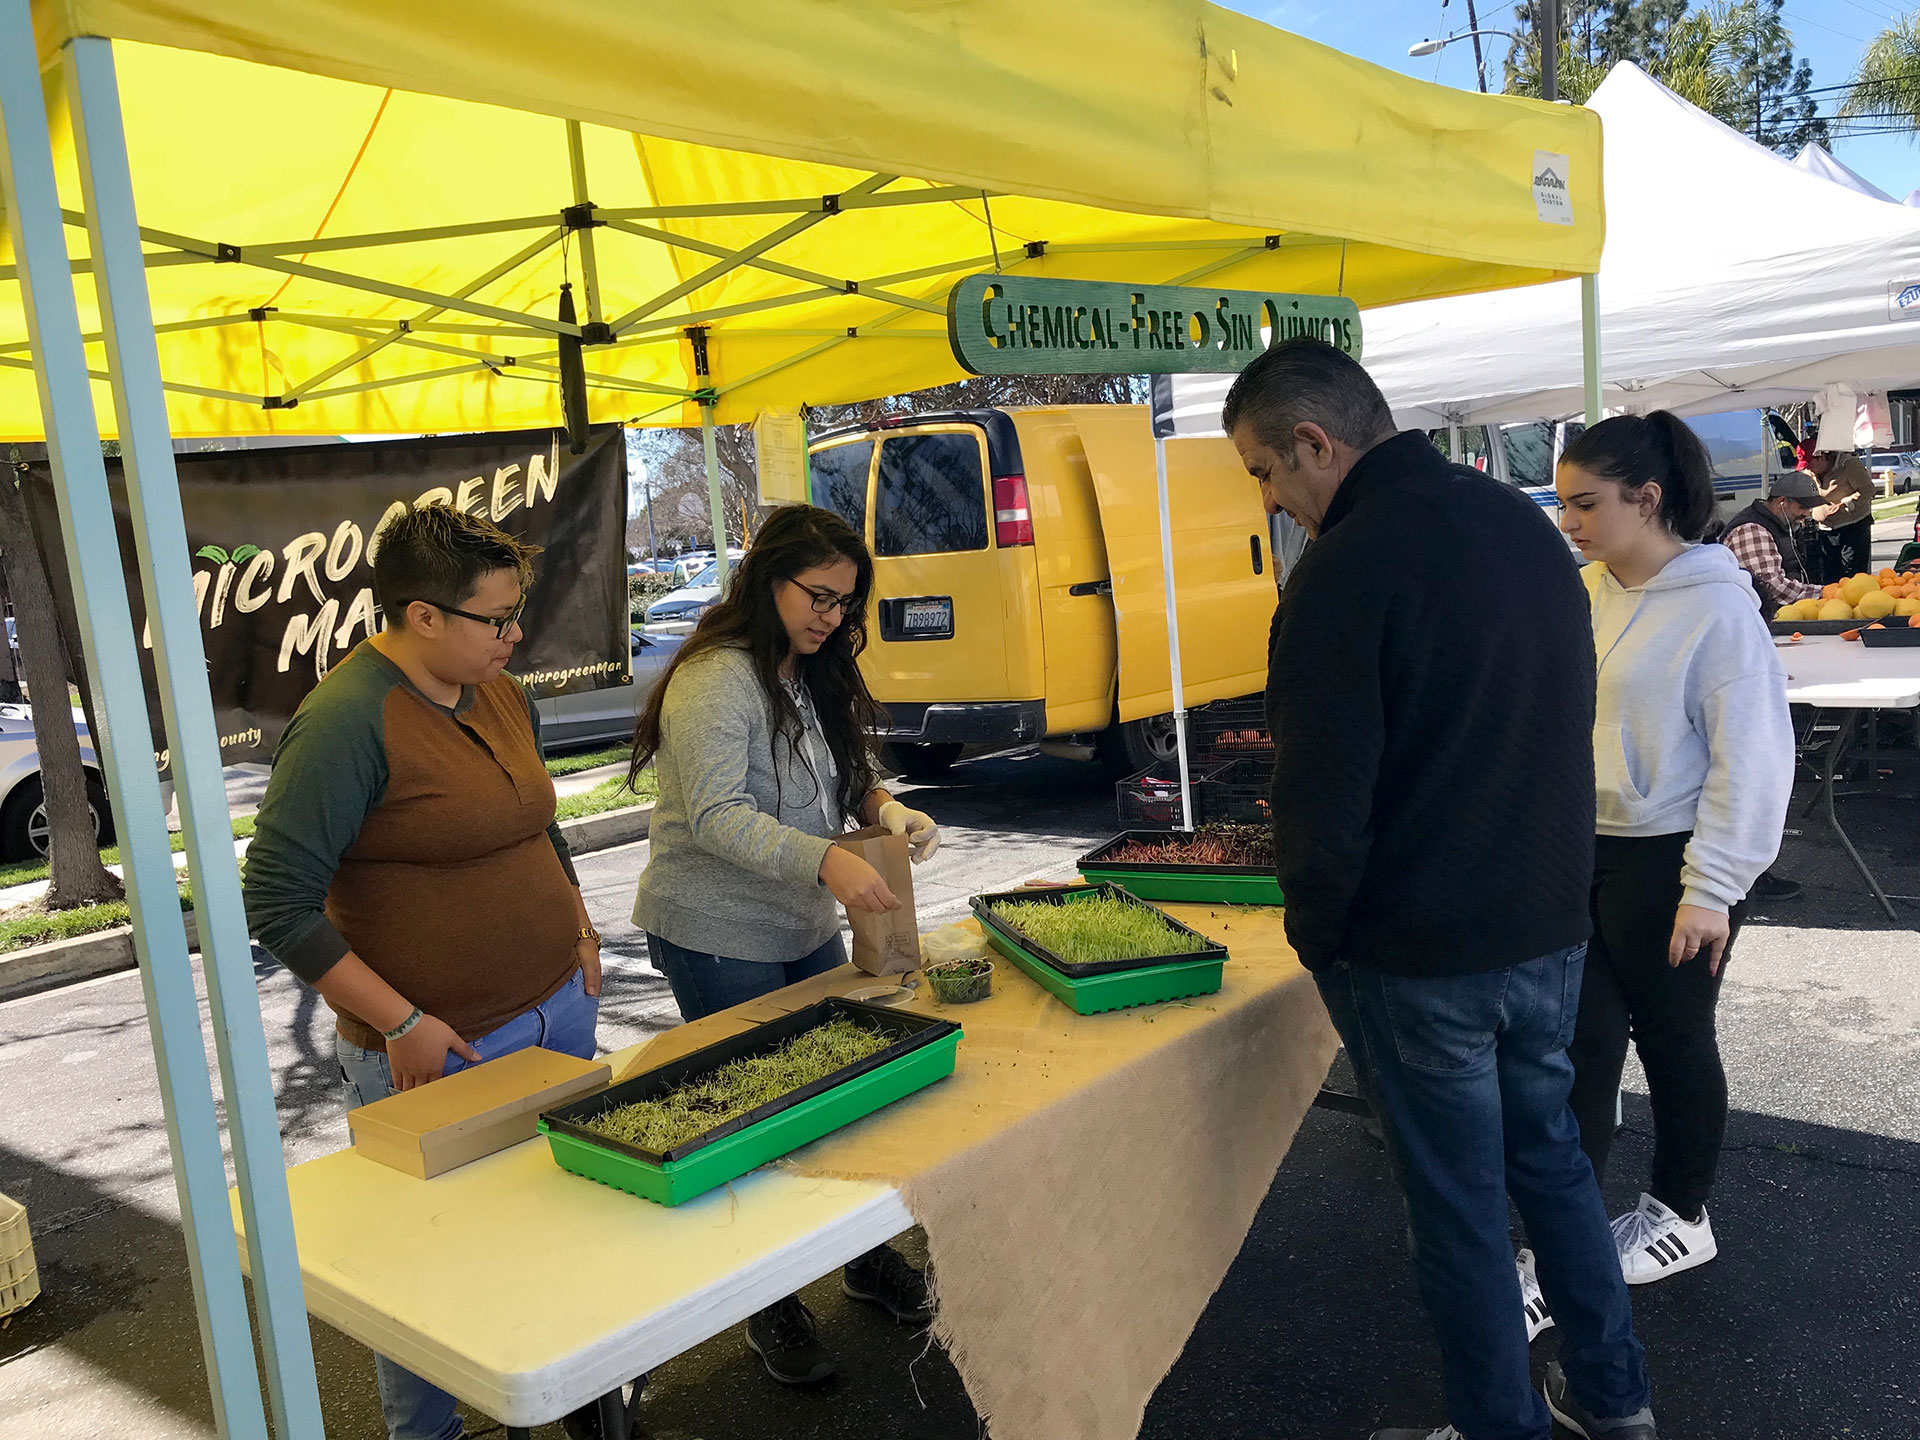 Many chemical-free food options available at the market